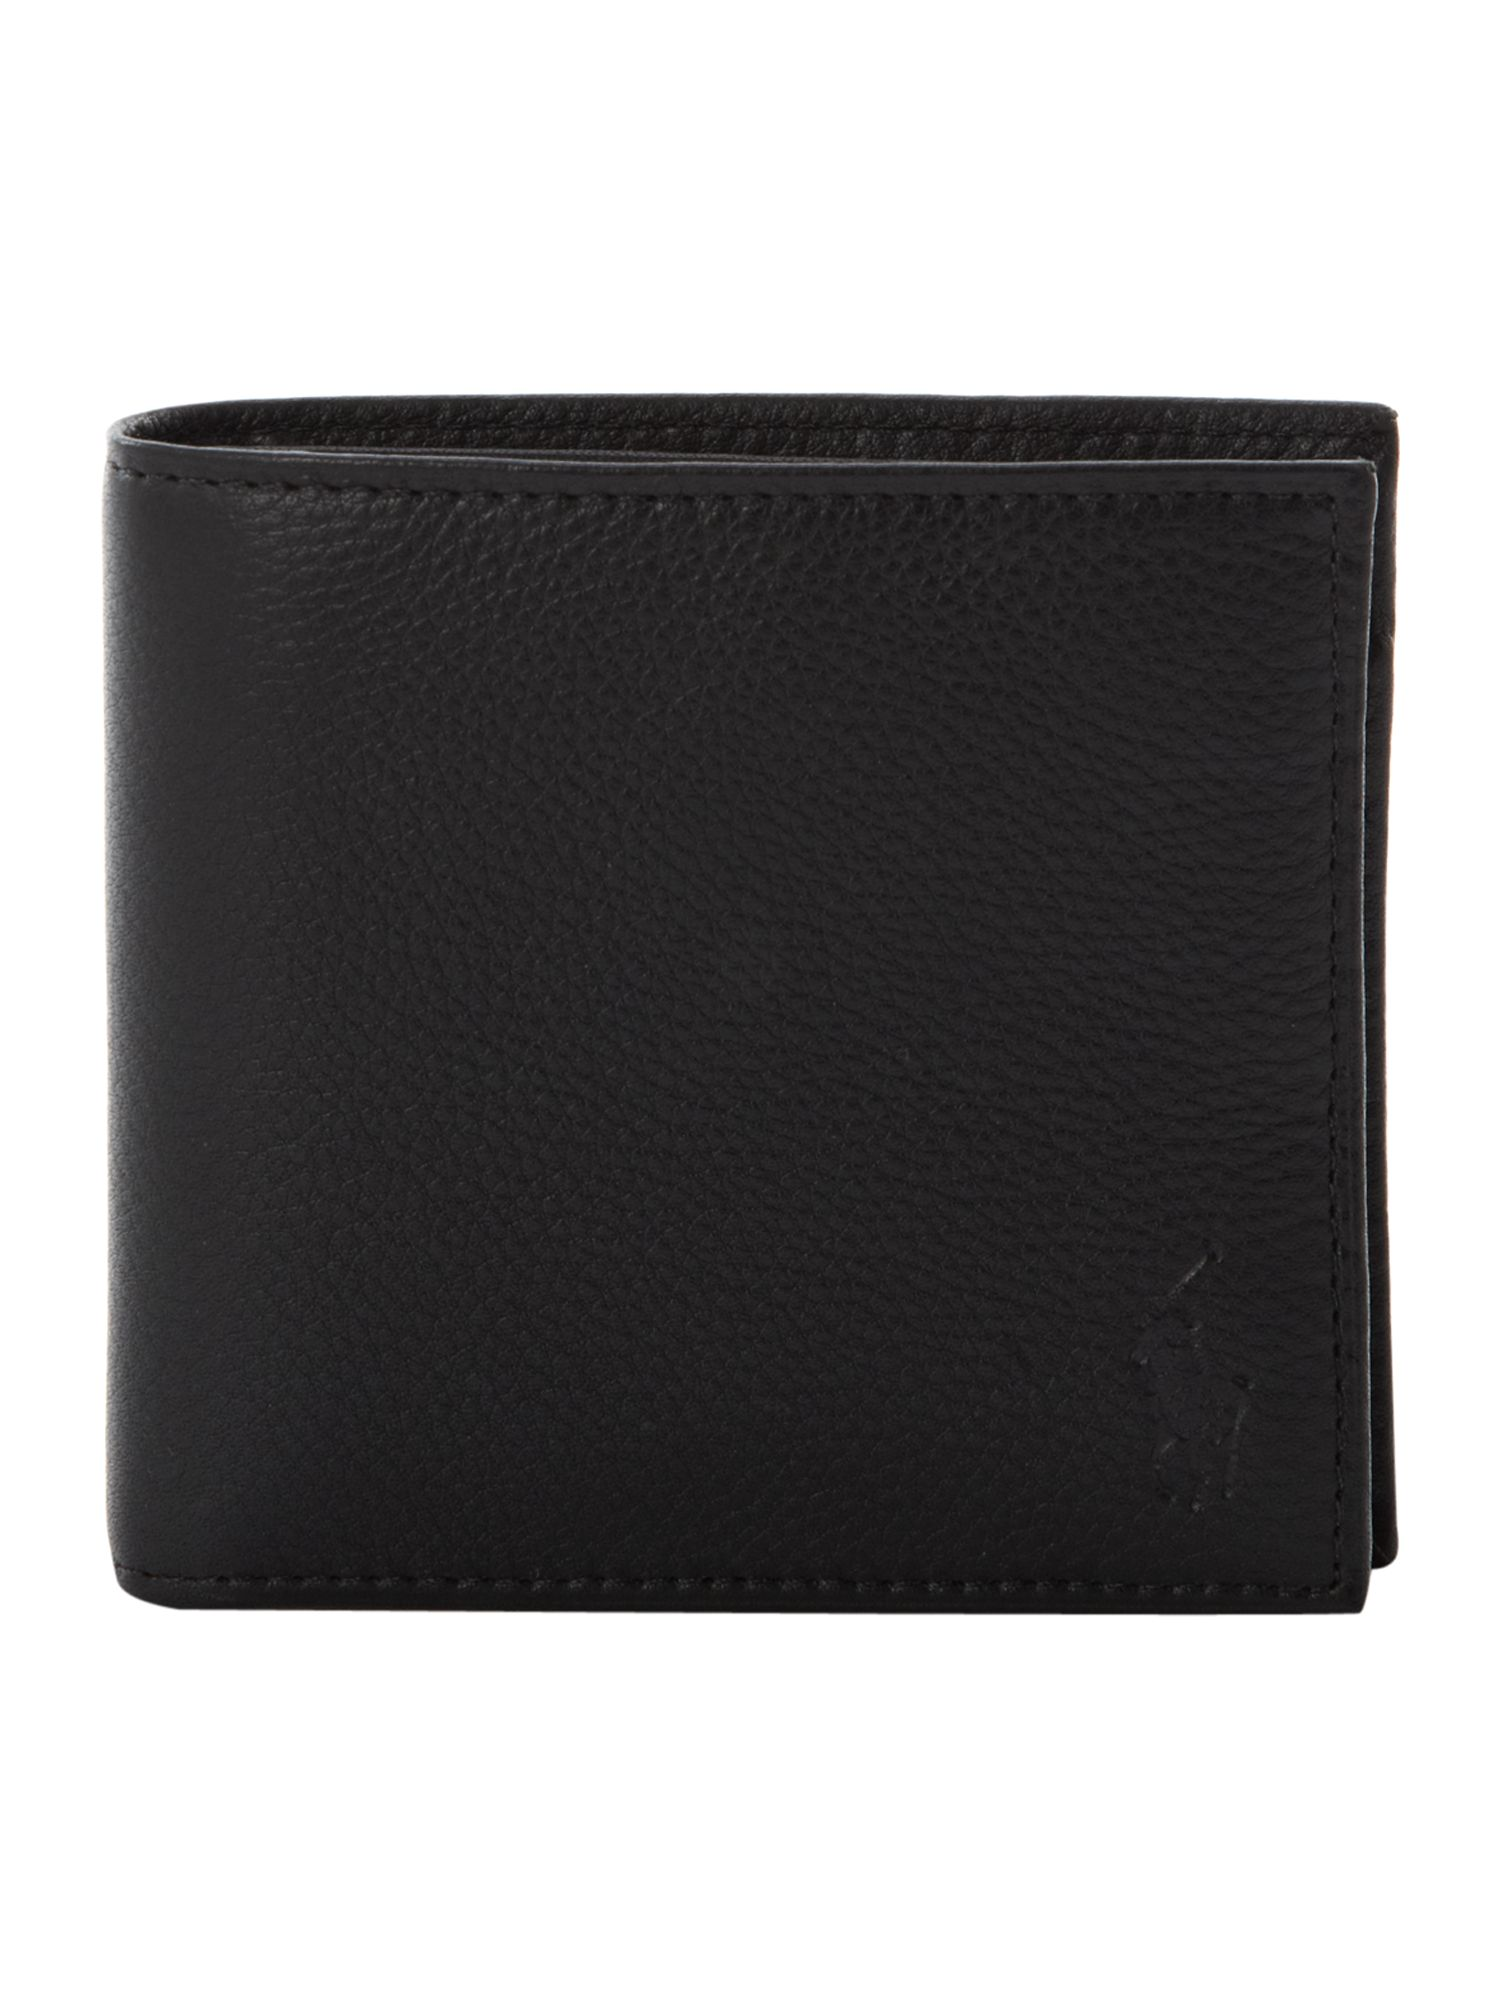 Wallet with coin holder